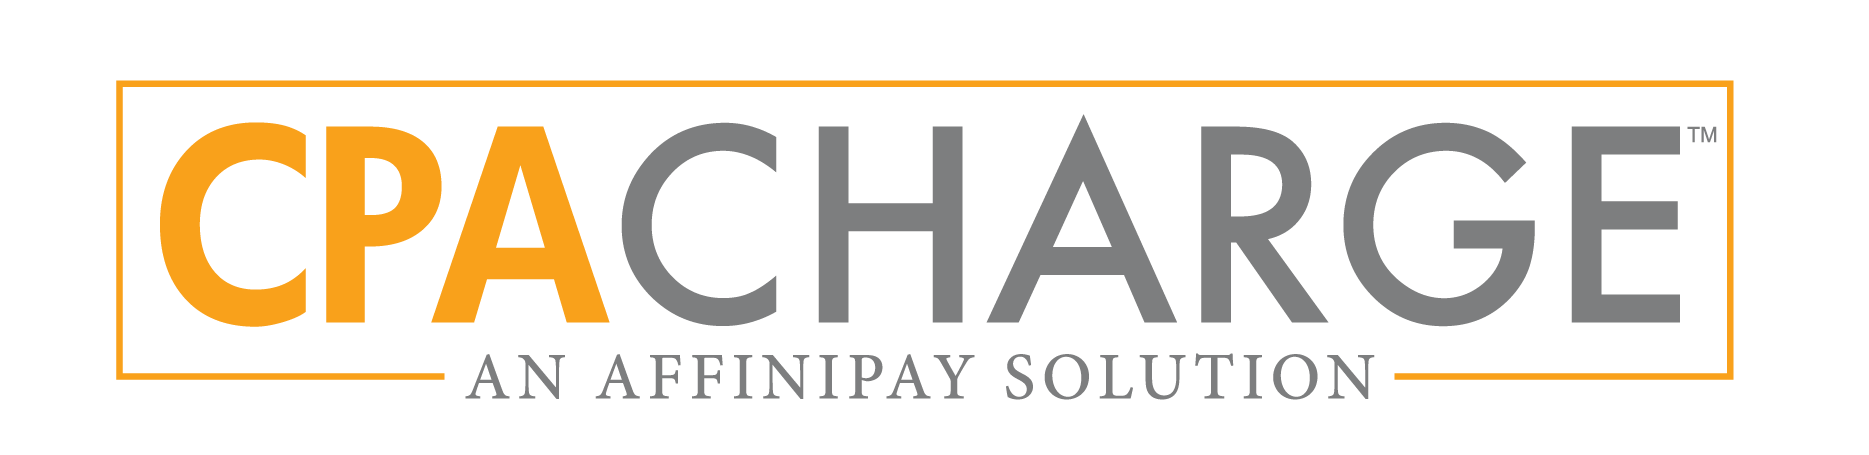 CPACharge_APSolution_RGB_SML (2)